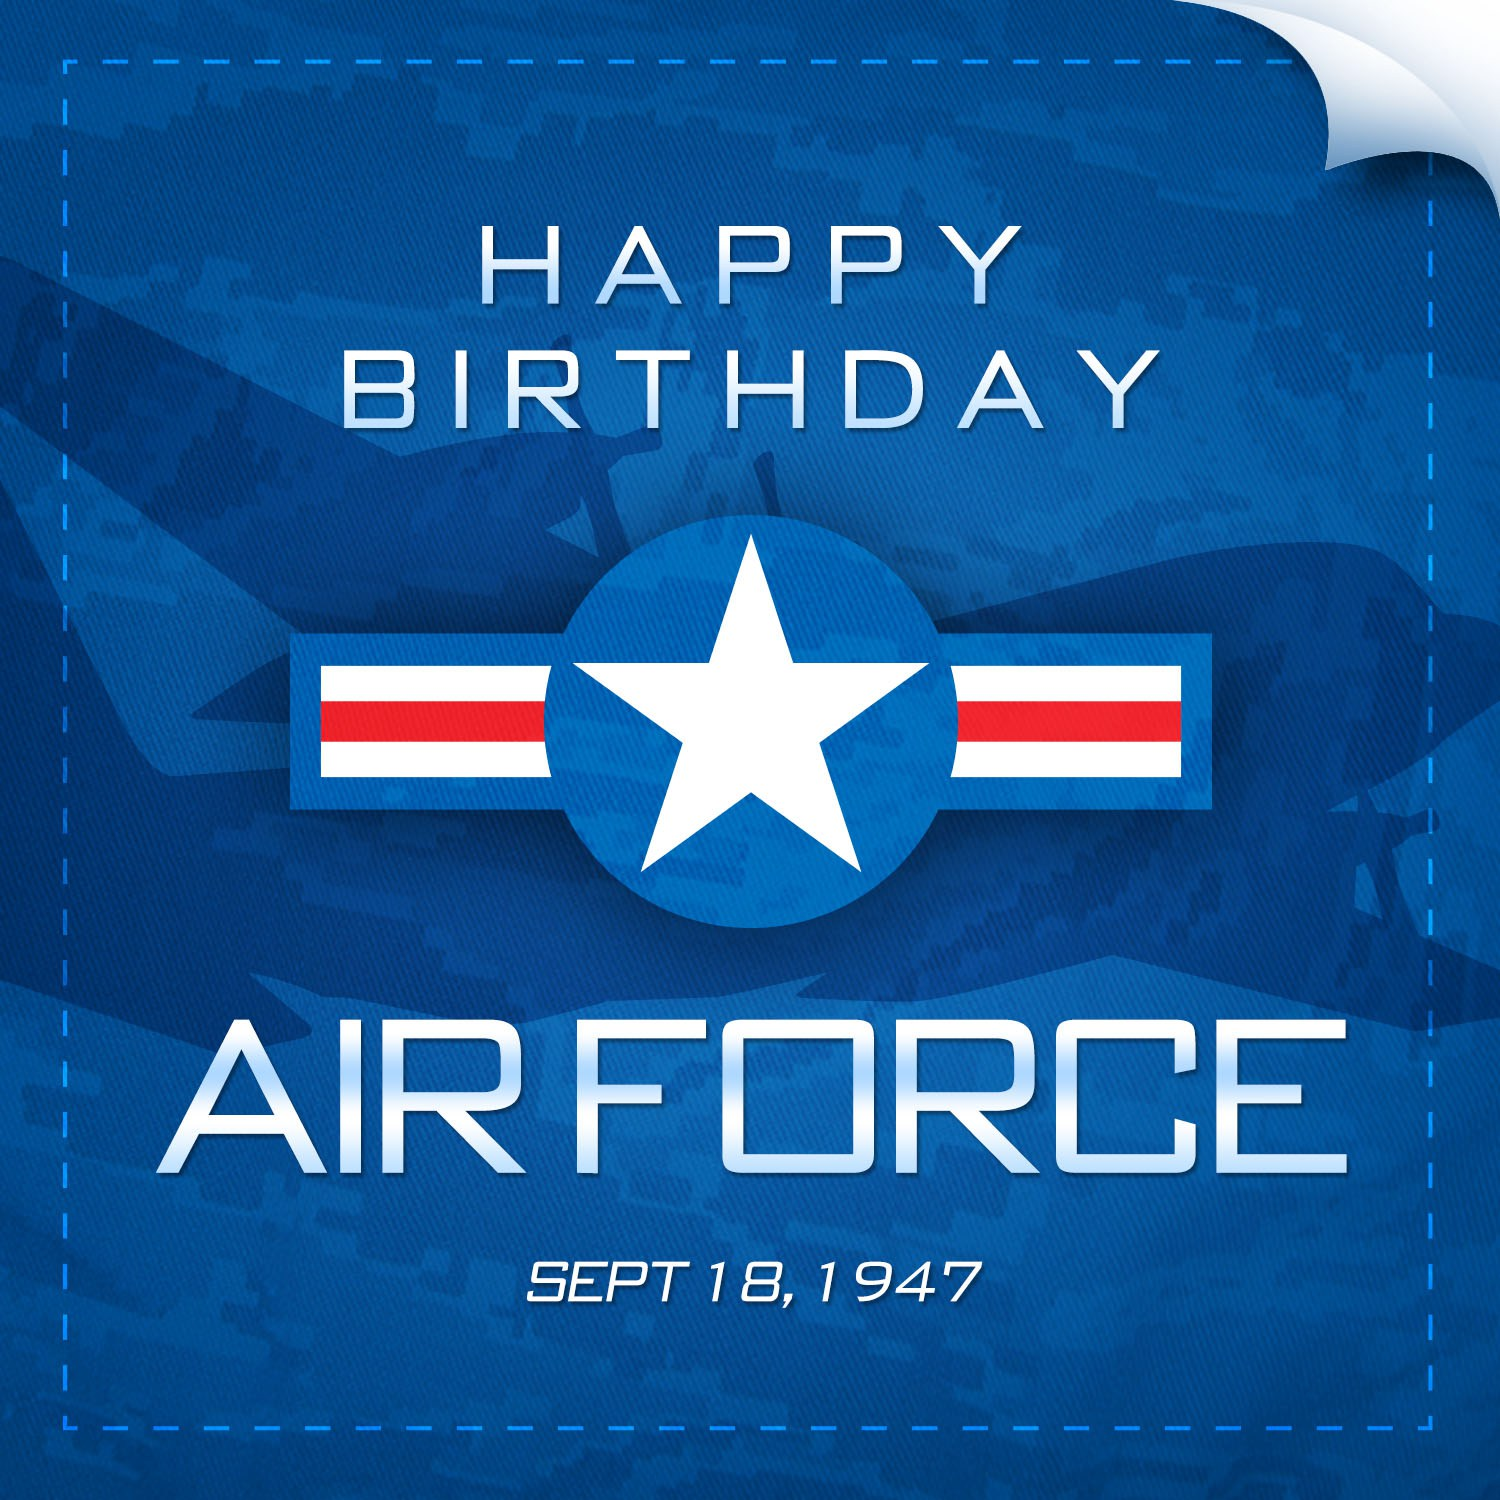 happy birthday air force ; 150917-F-UT715-001